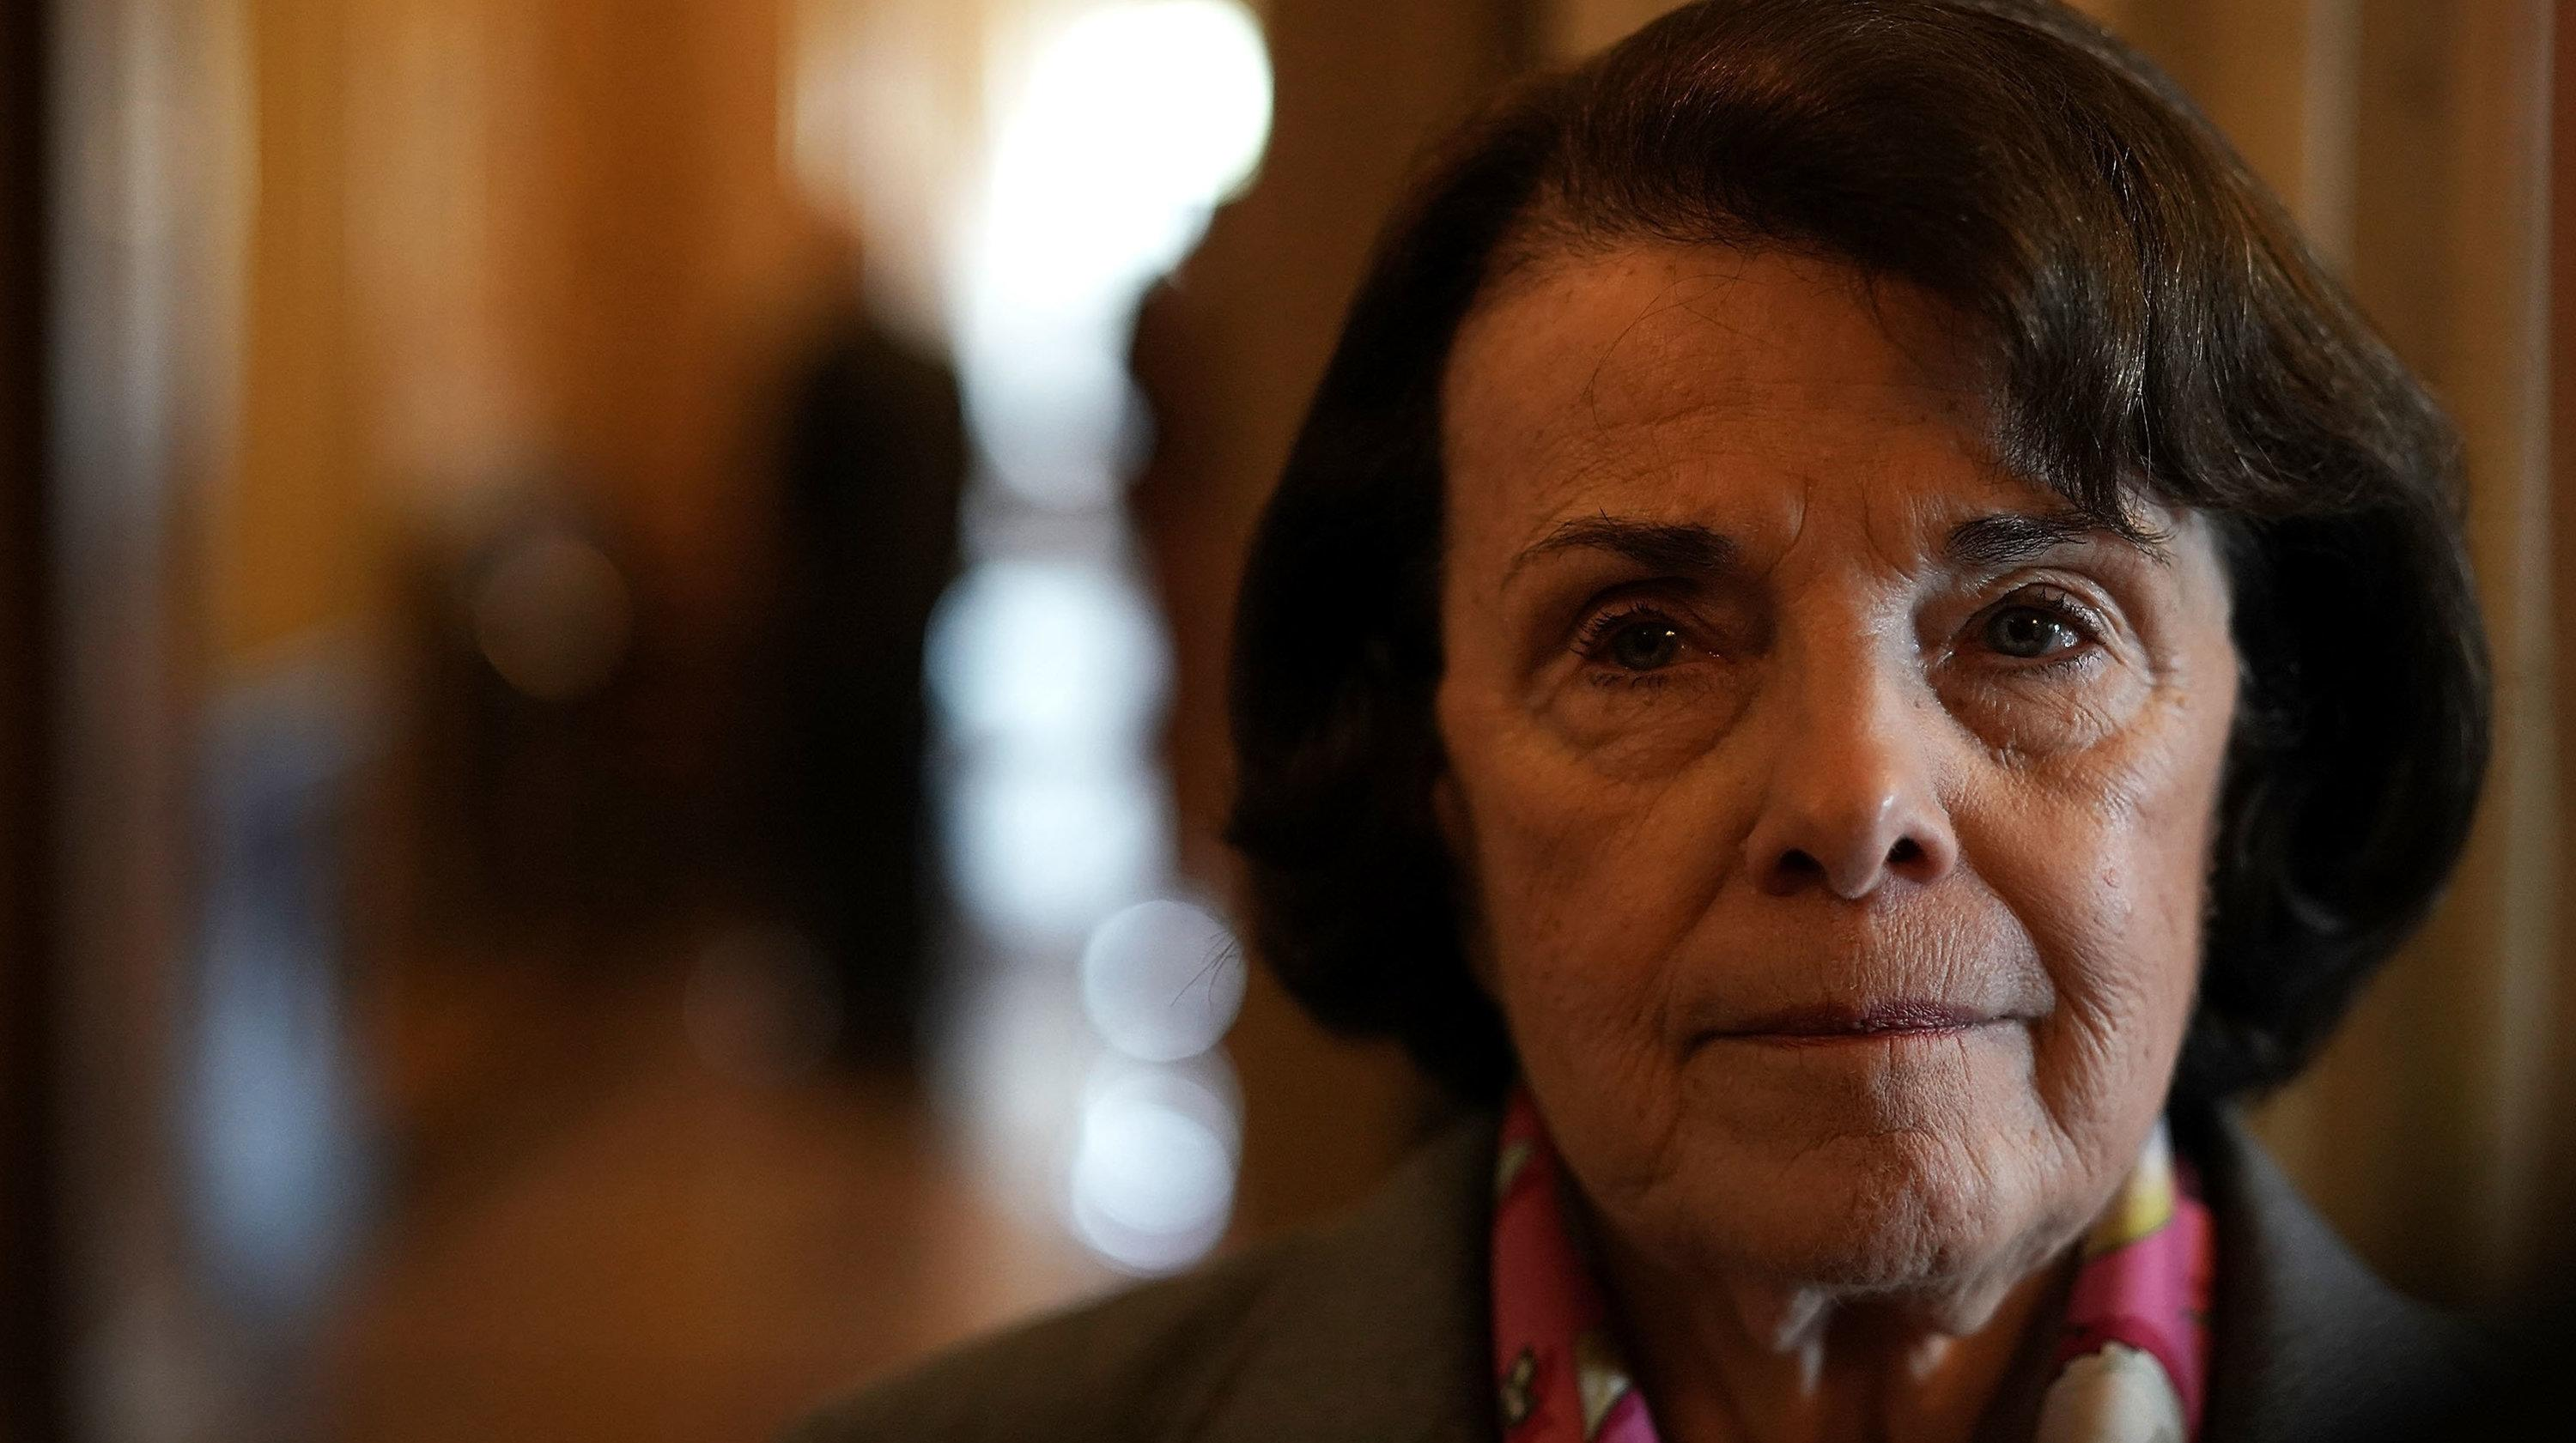 California Democrats Decline To Endorse Dianne Feinstein For Re-Election